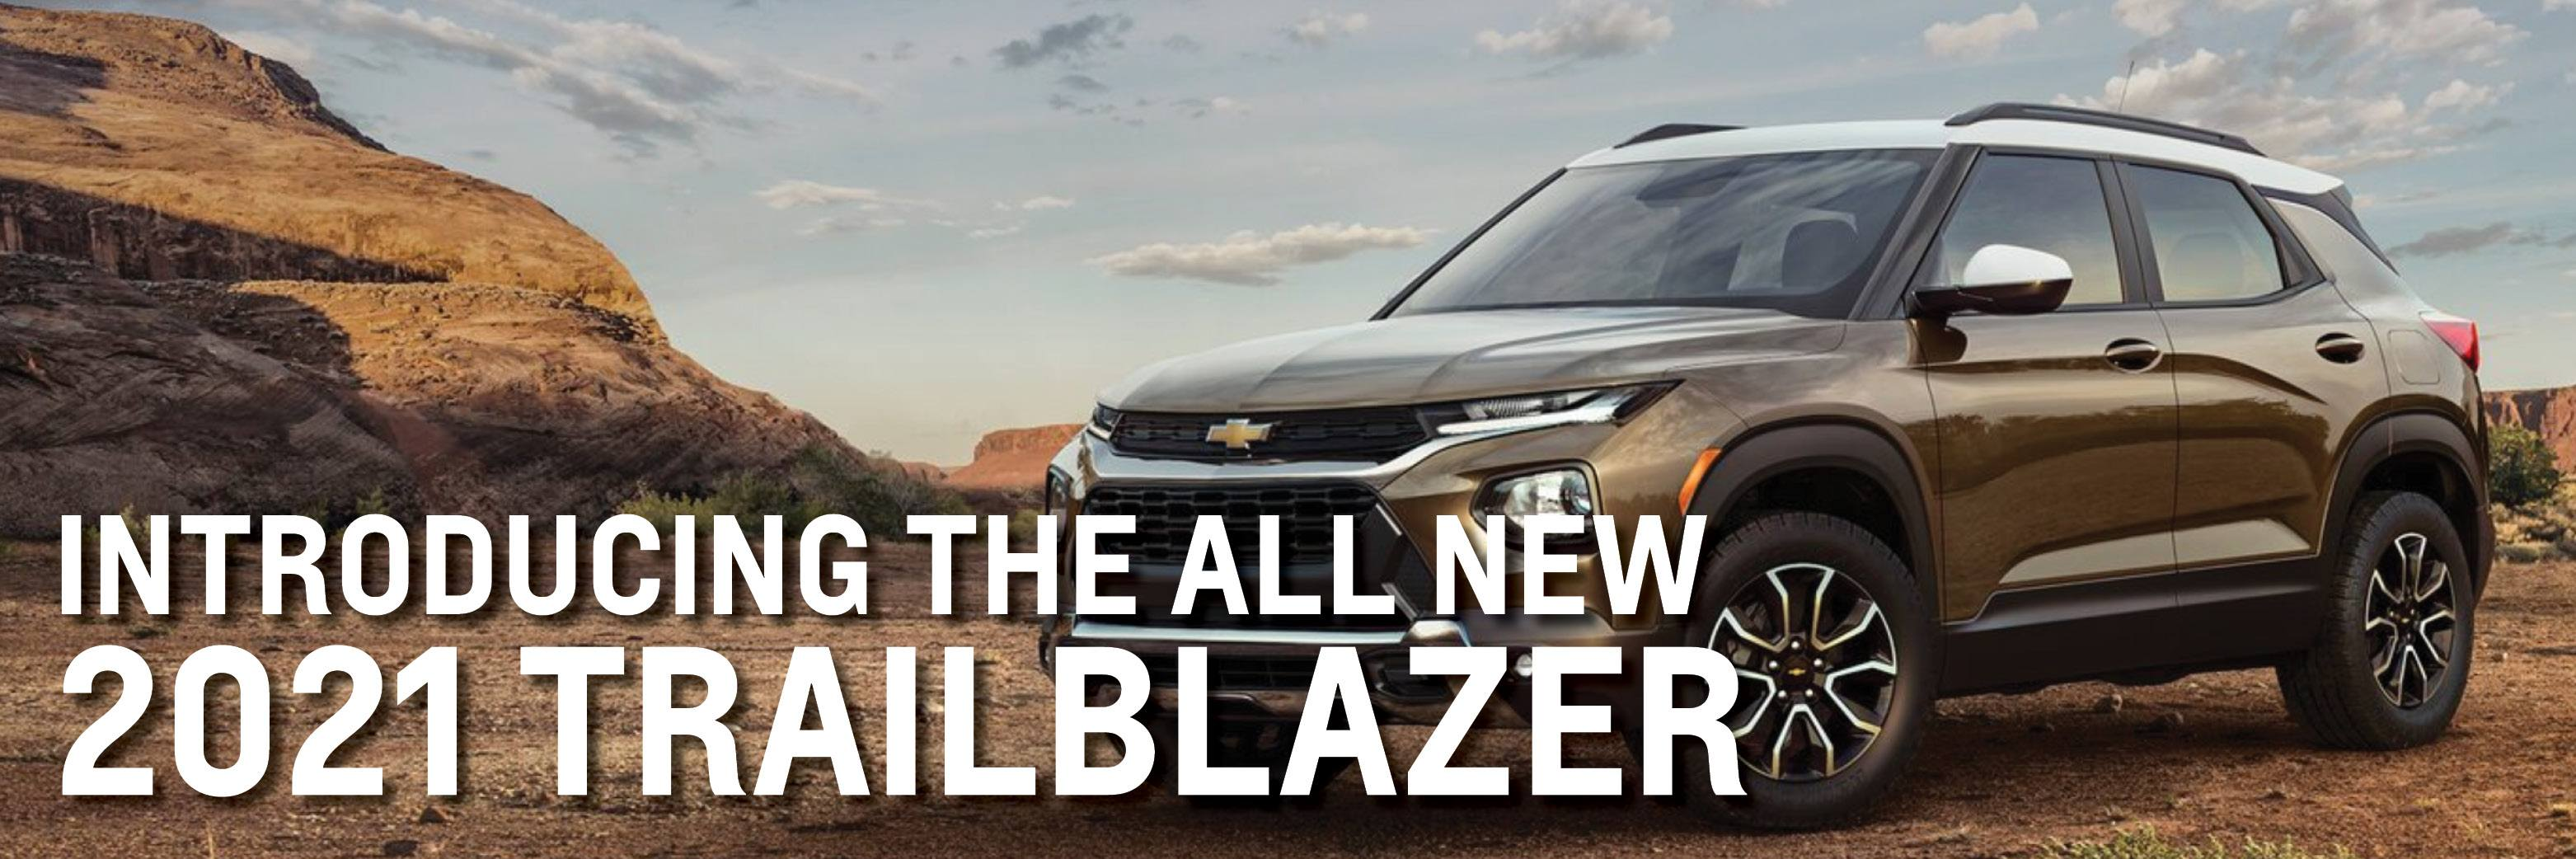 Introducing the 2021 Trailblazer